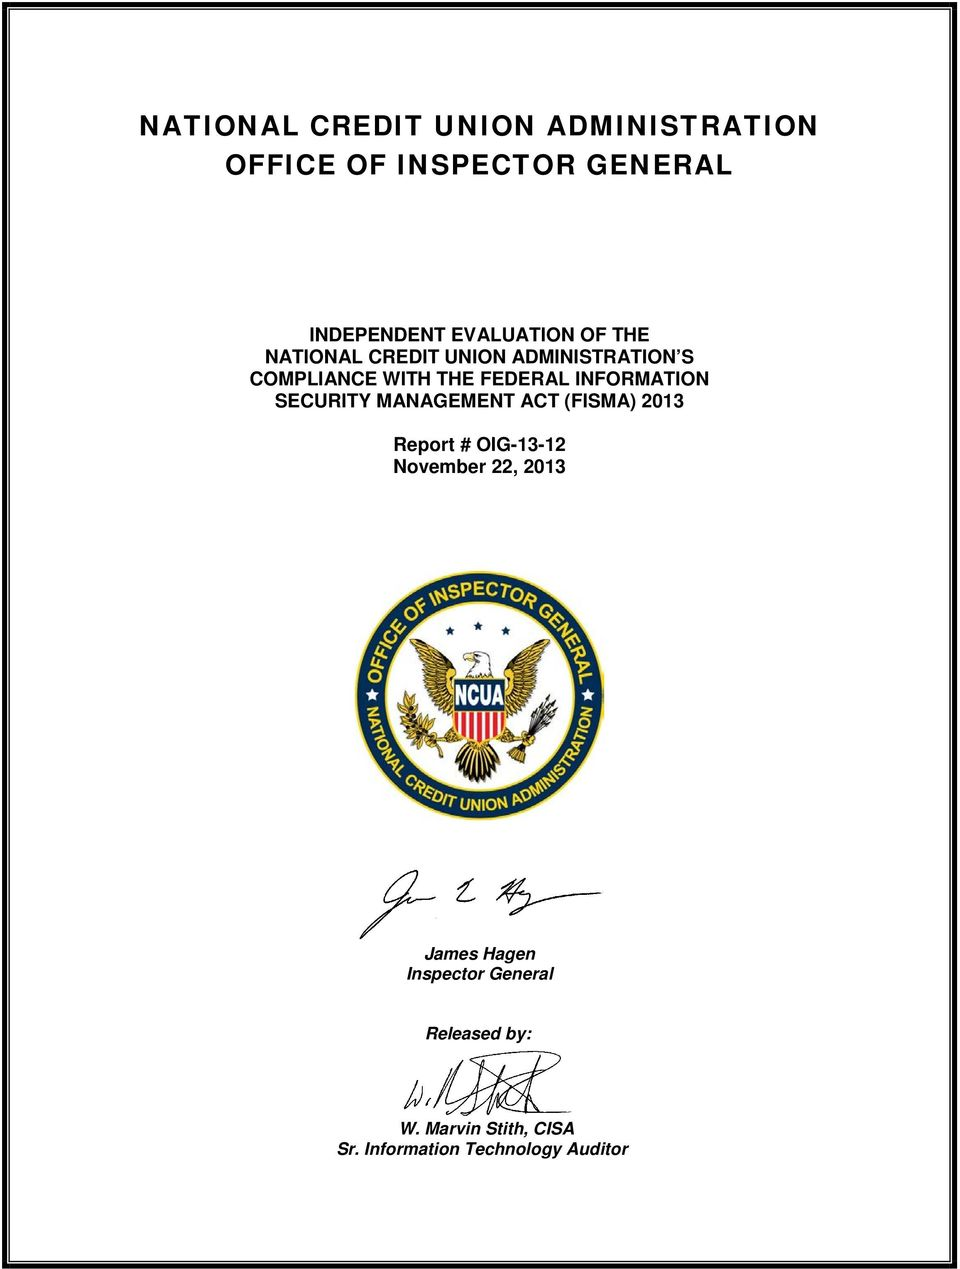 INFORMATION SECURITY MANAGEMENT ACT (FISMA) 2013 Report # OIG-13-12 November 22, 2013